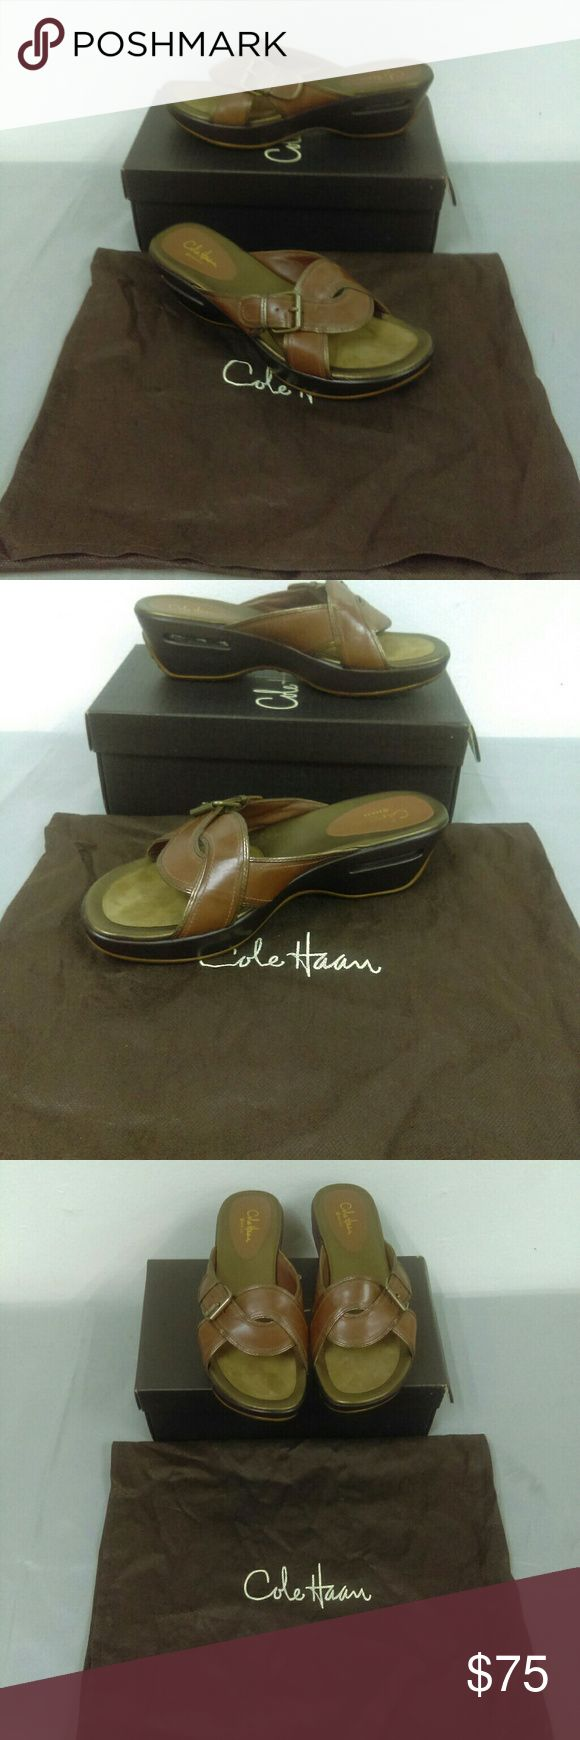 "NIB Cole Haan Air Darby Slide Sz. 9 New and never worn. Box has slight damage to top but no damage to shoes at all. Has Nike Air technology. In dark Amber. 2 1/2"" heel. Cole Haan Shoes"